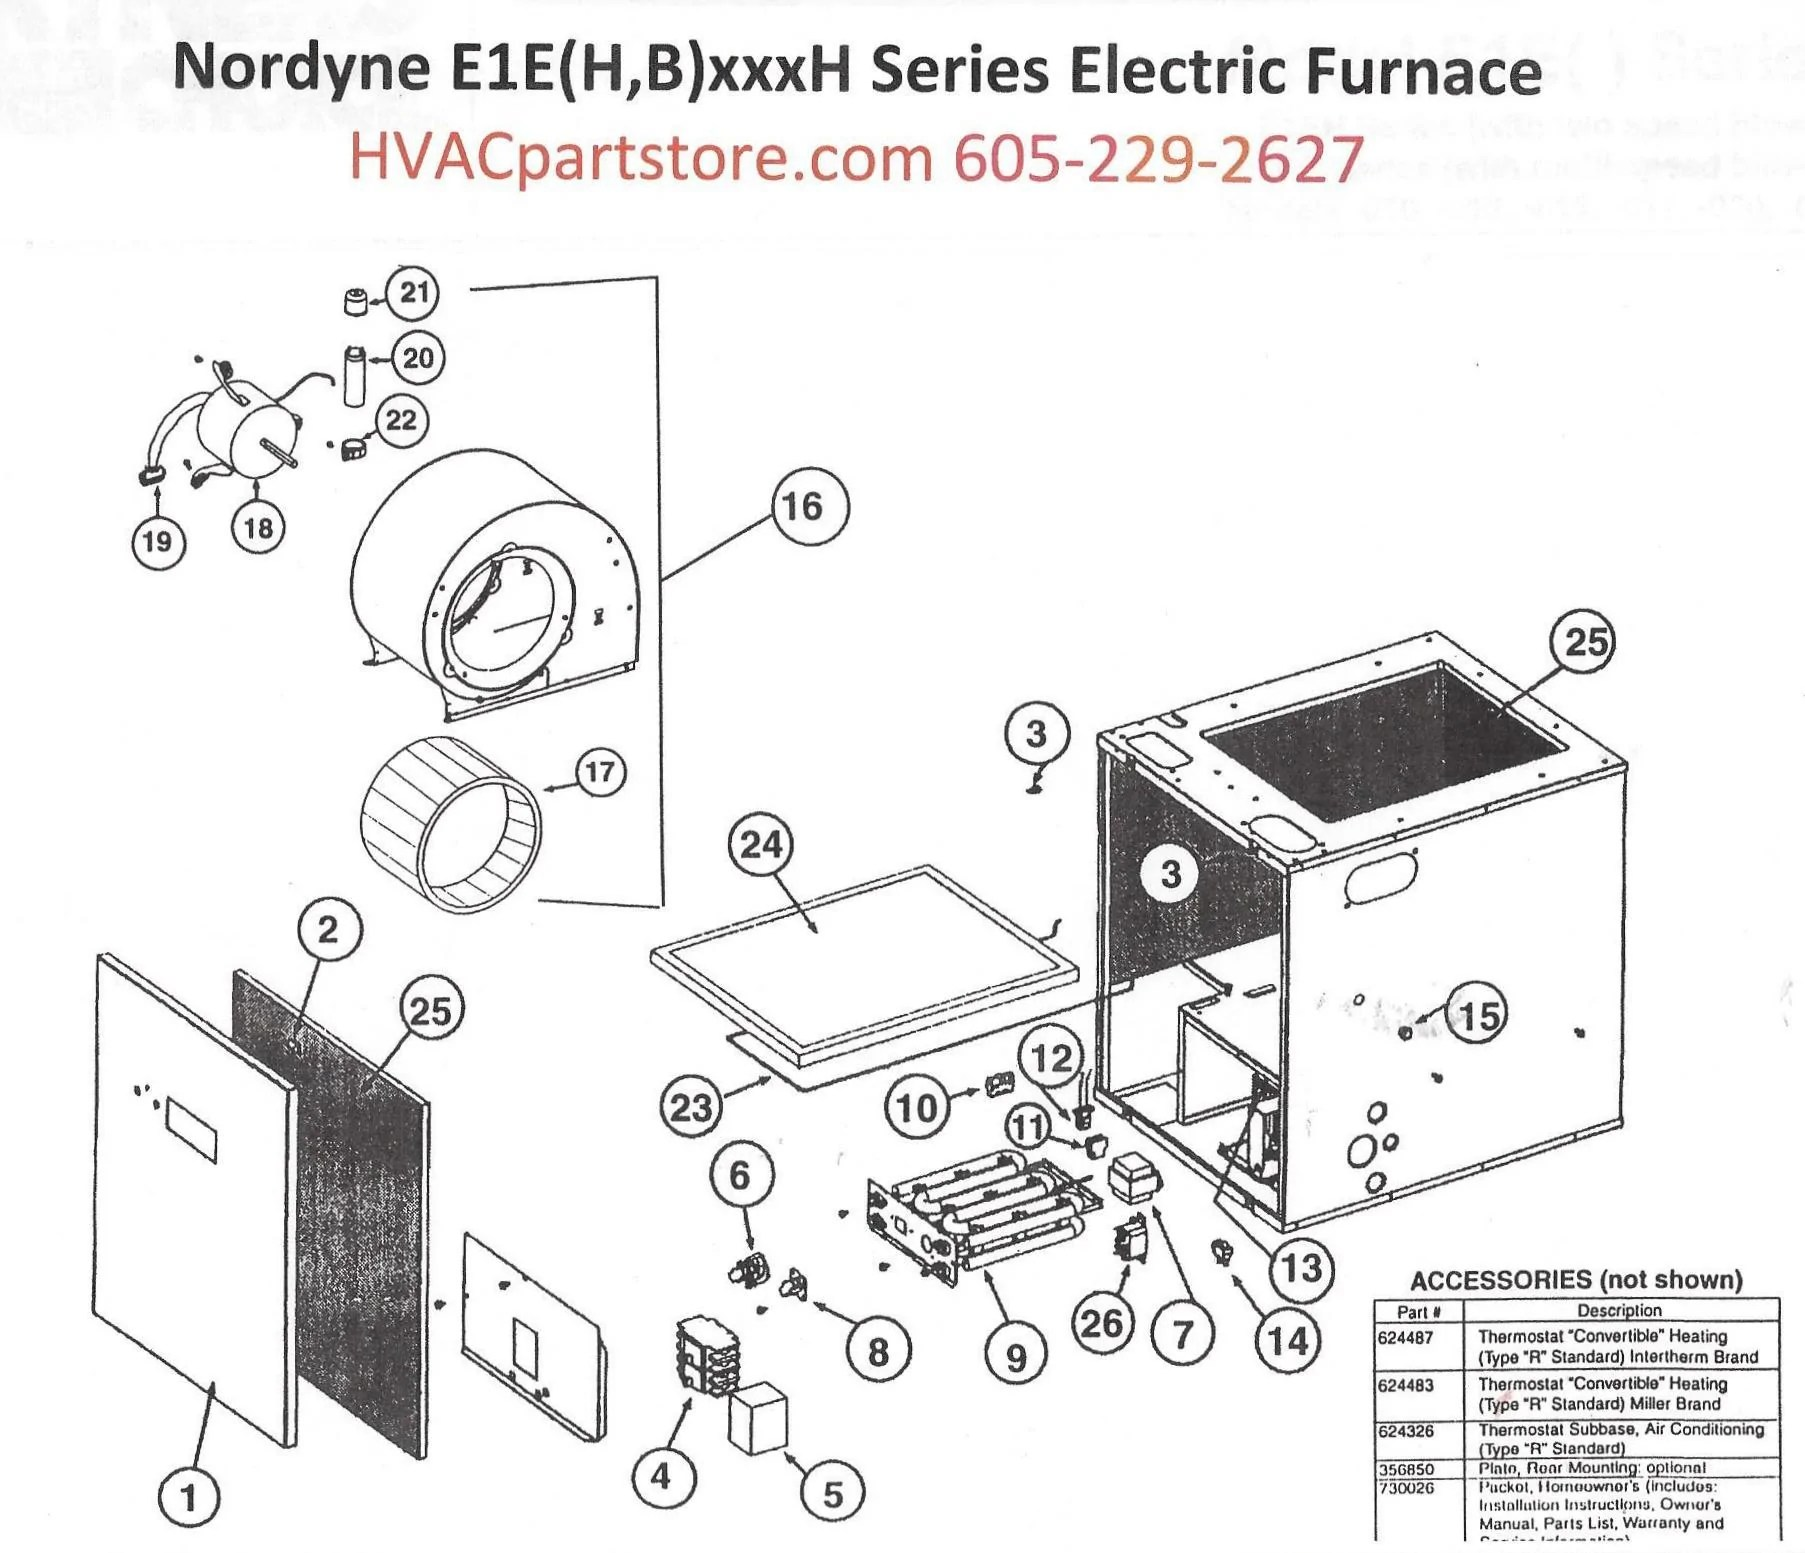 E1EH020H Nordyne Electric Furnace Parts – HVACpartstore